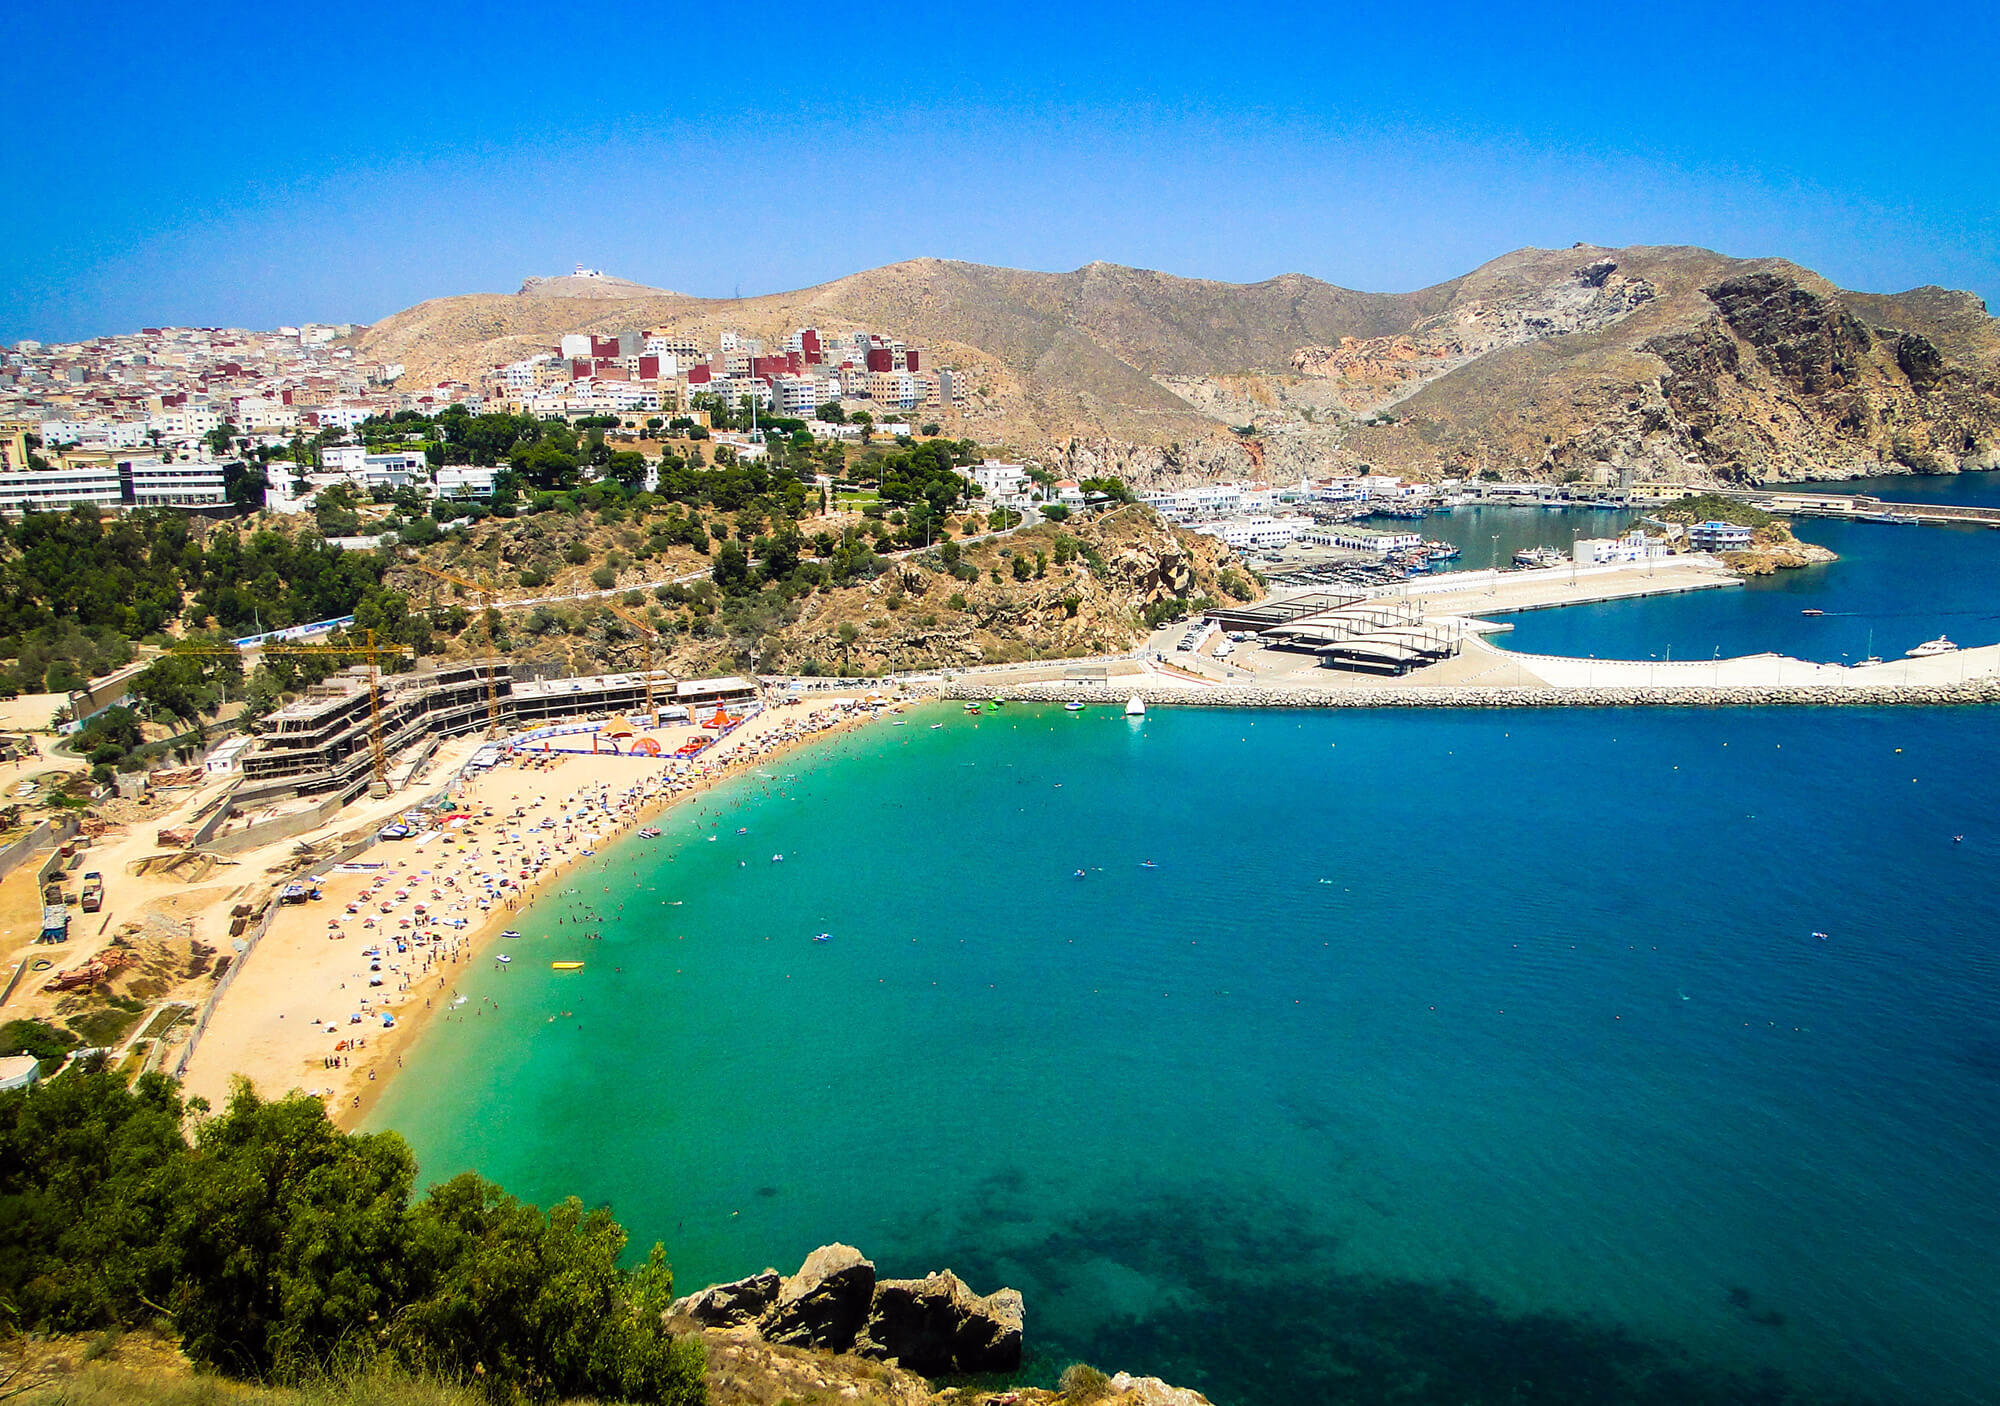 Best Beaches of Morocco - Between Mediterranean and Atlantic Ocean - Quemado Beach